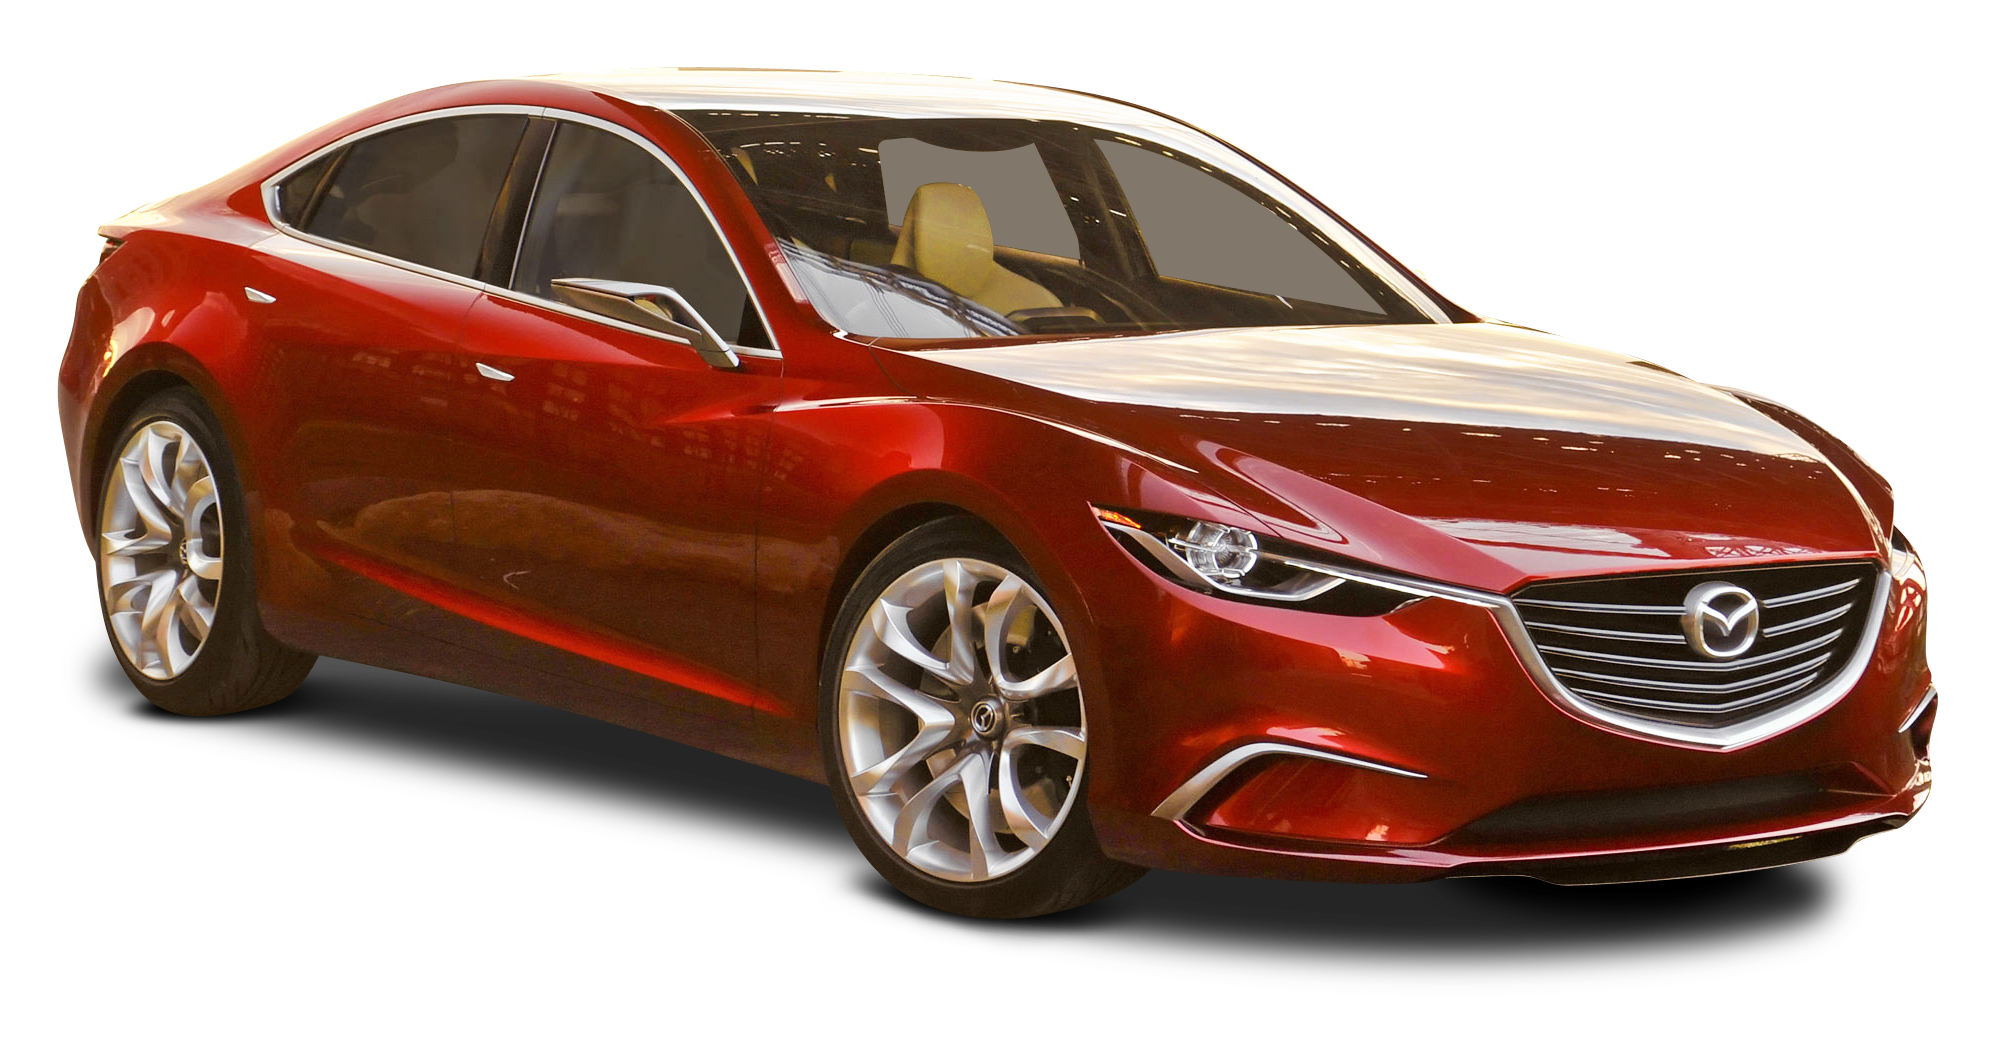 Mazda Takeri Red Car PNG Image